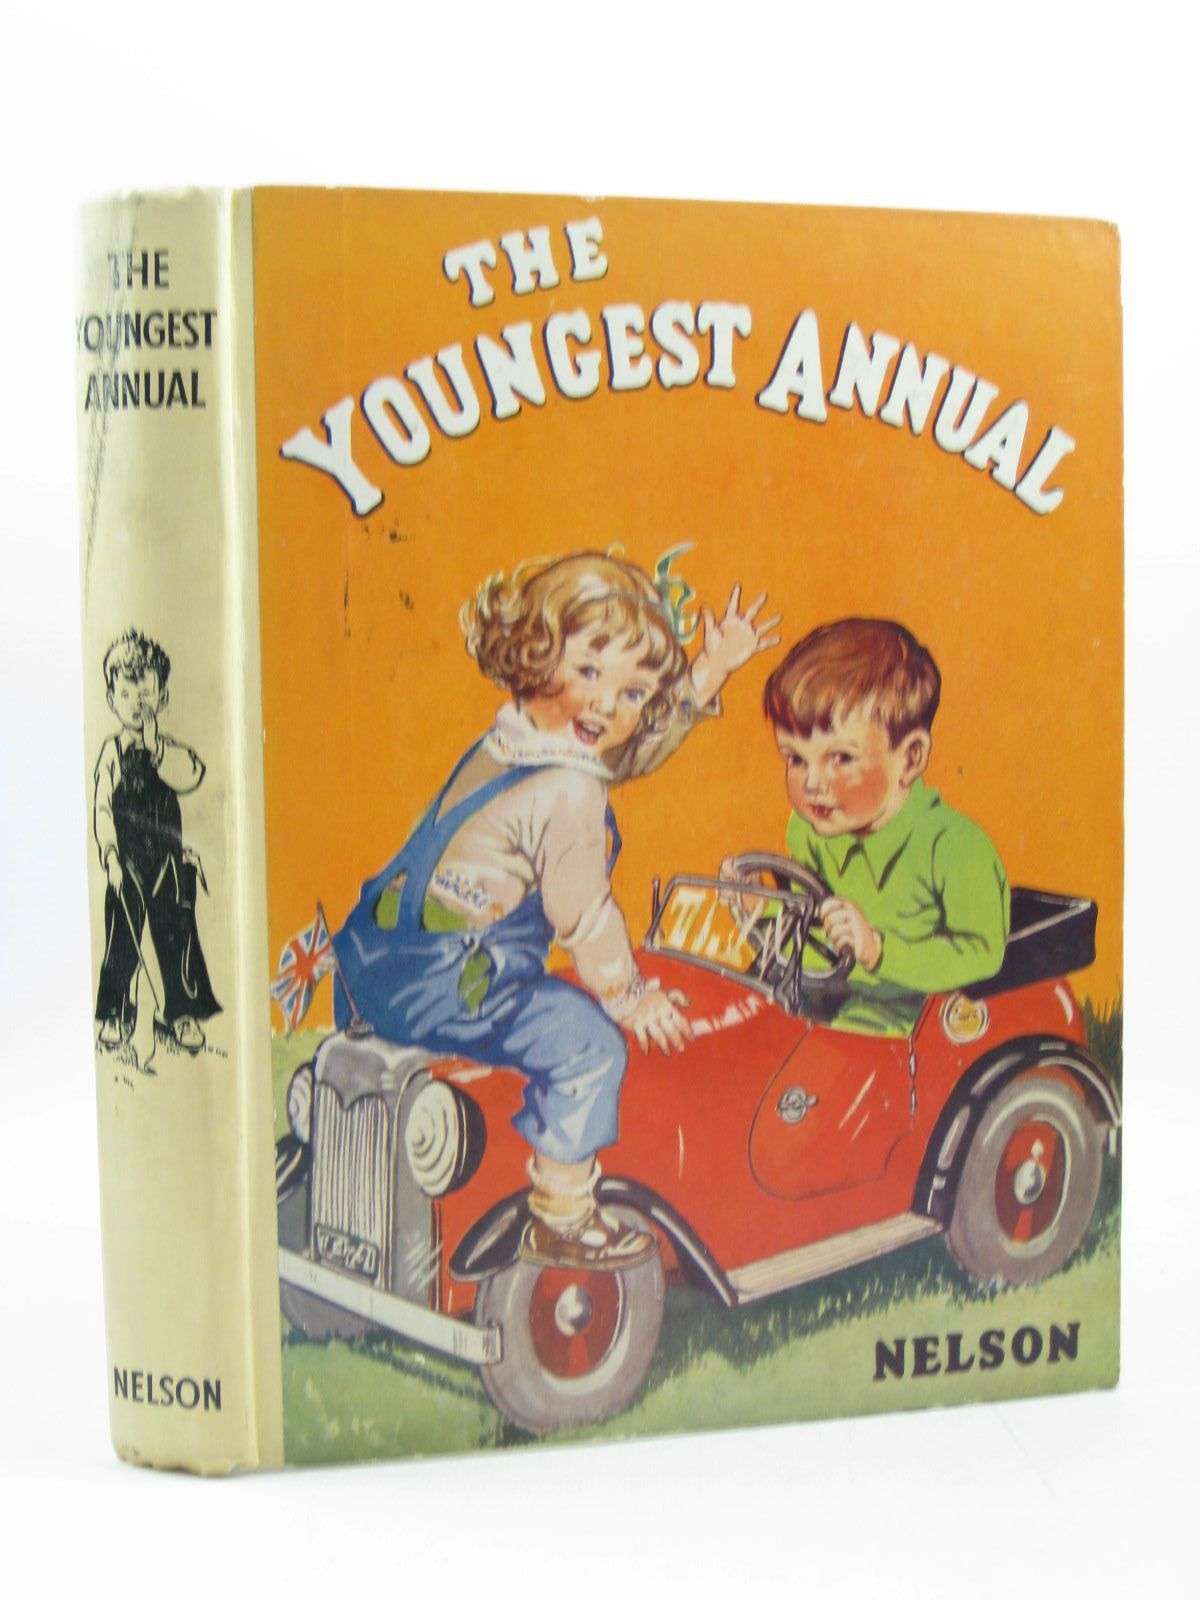 Cover of THE YOUNGEST ANNUAL by